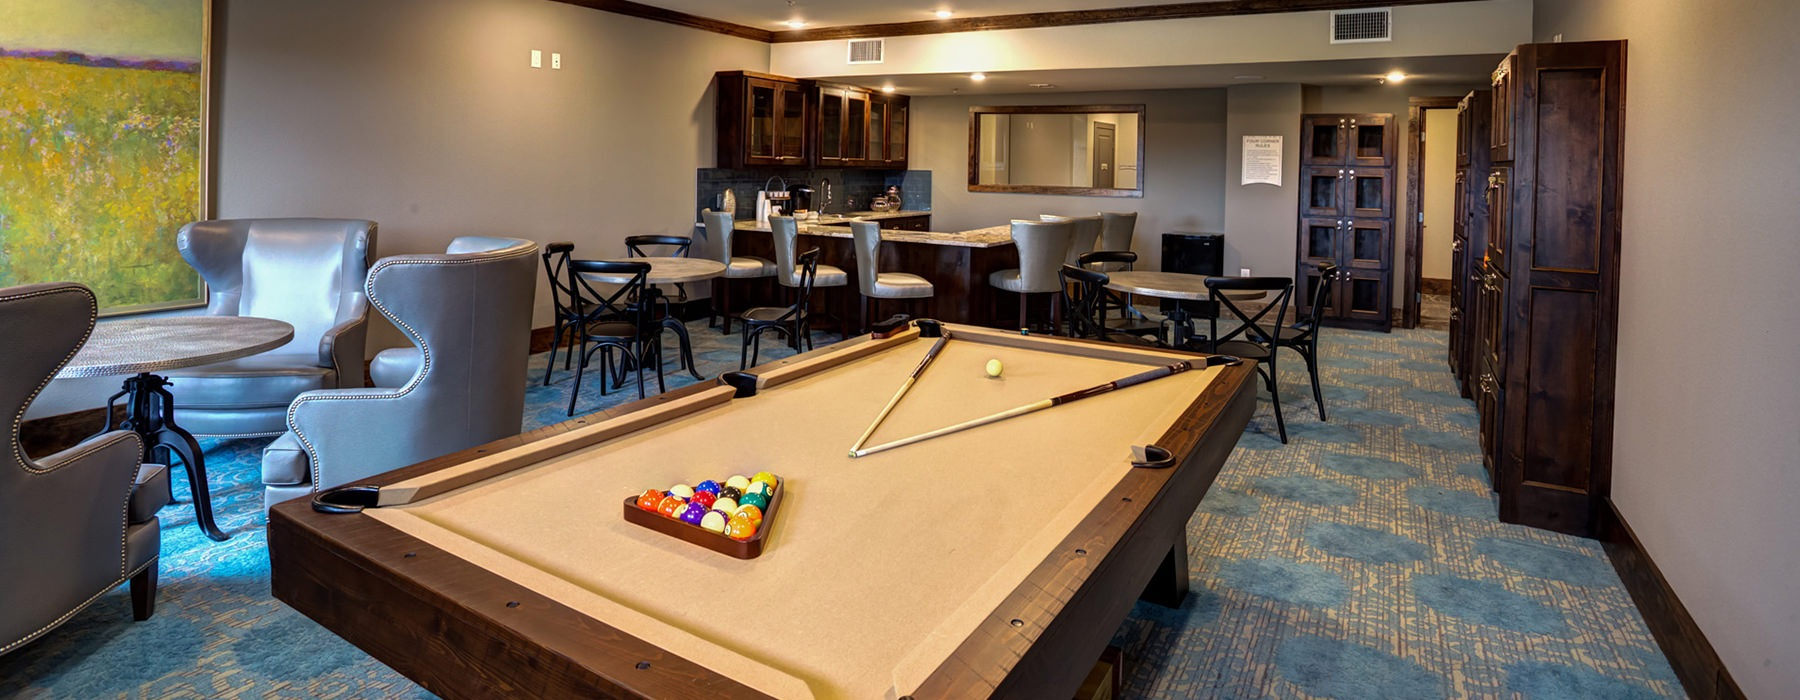 billiards area with pool table, and comfortable seating